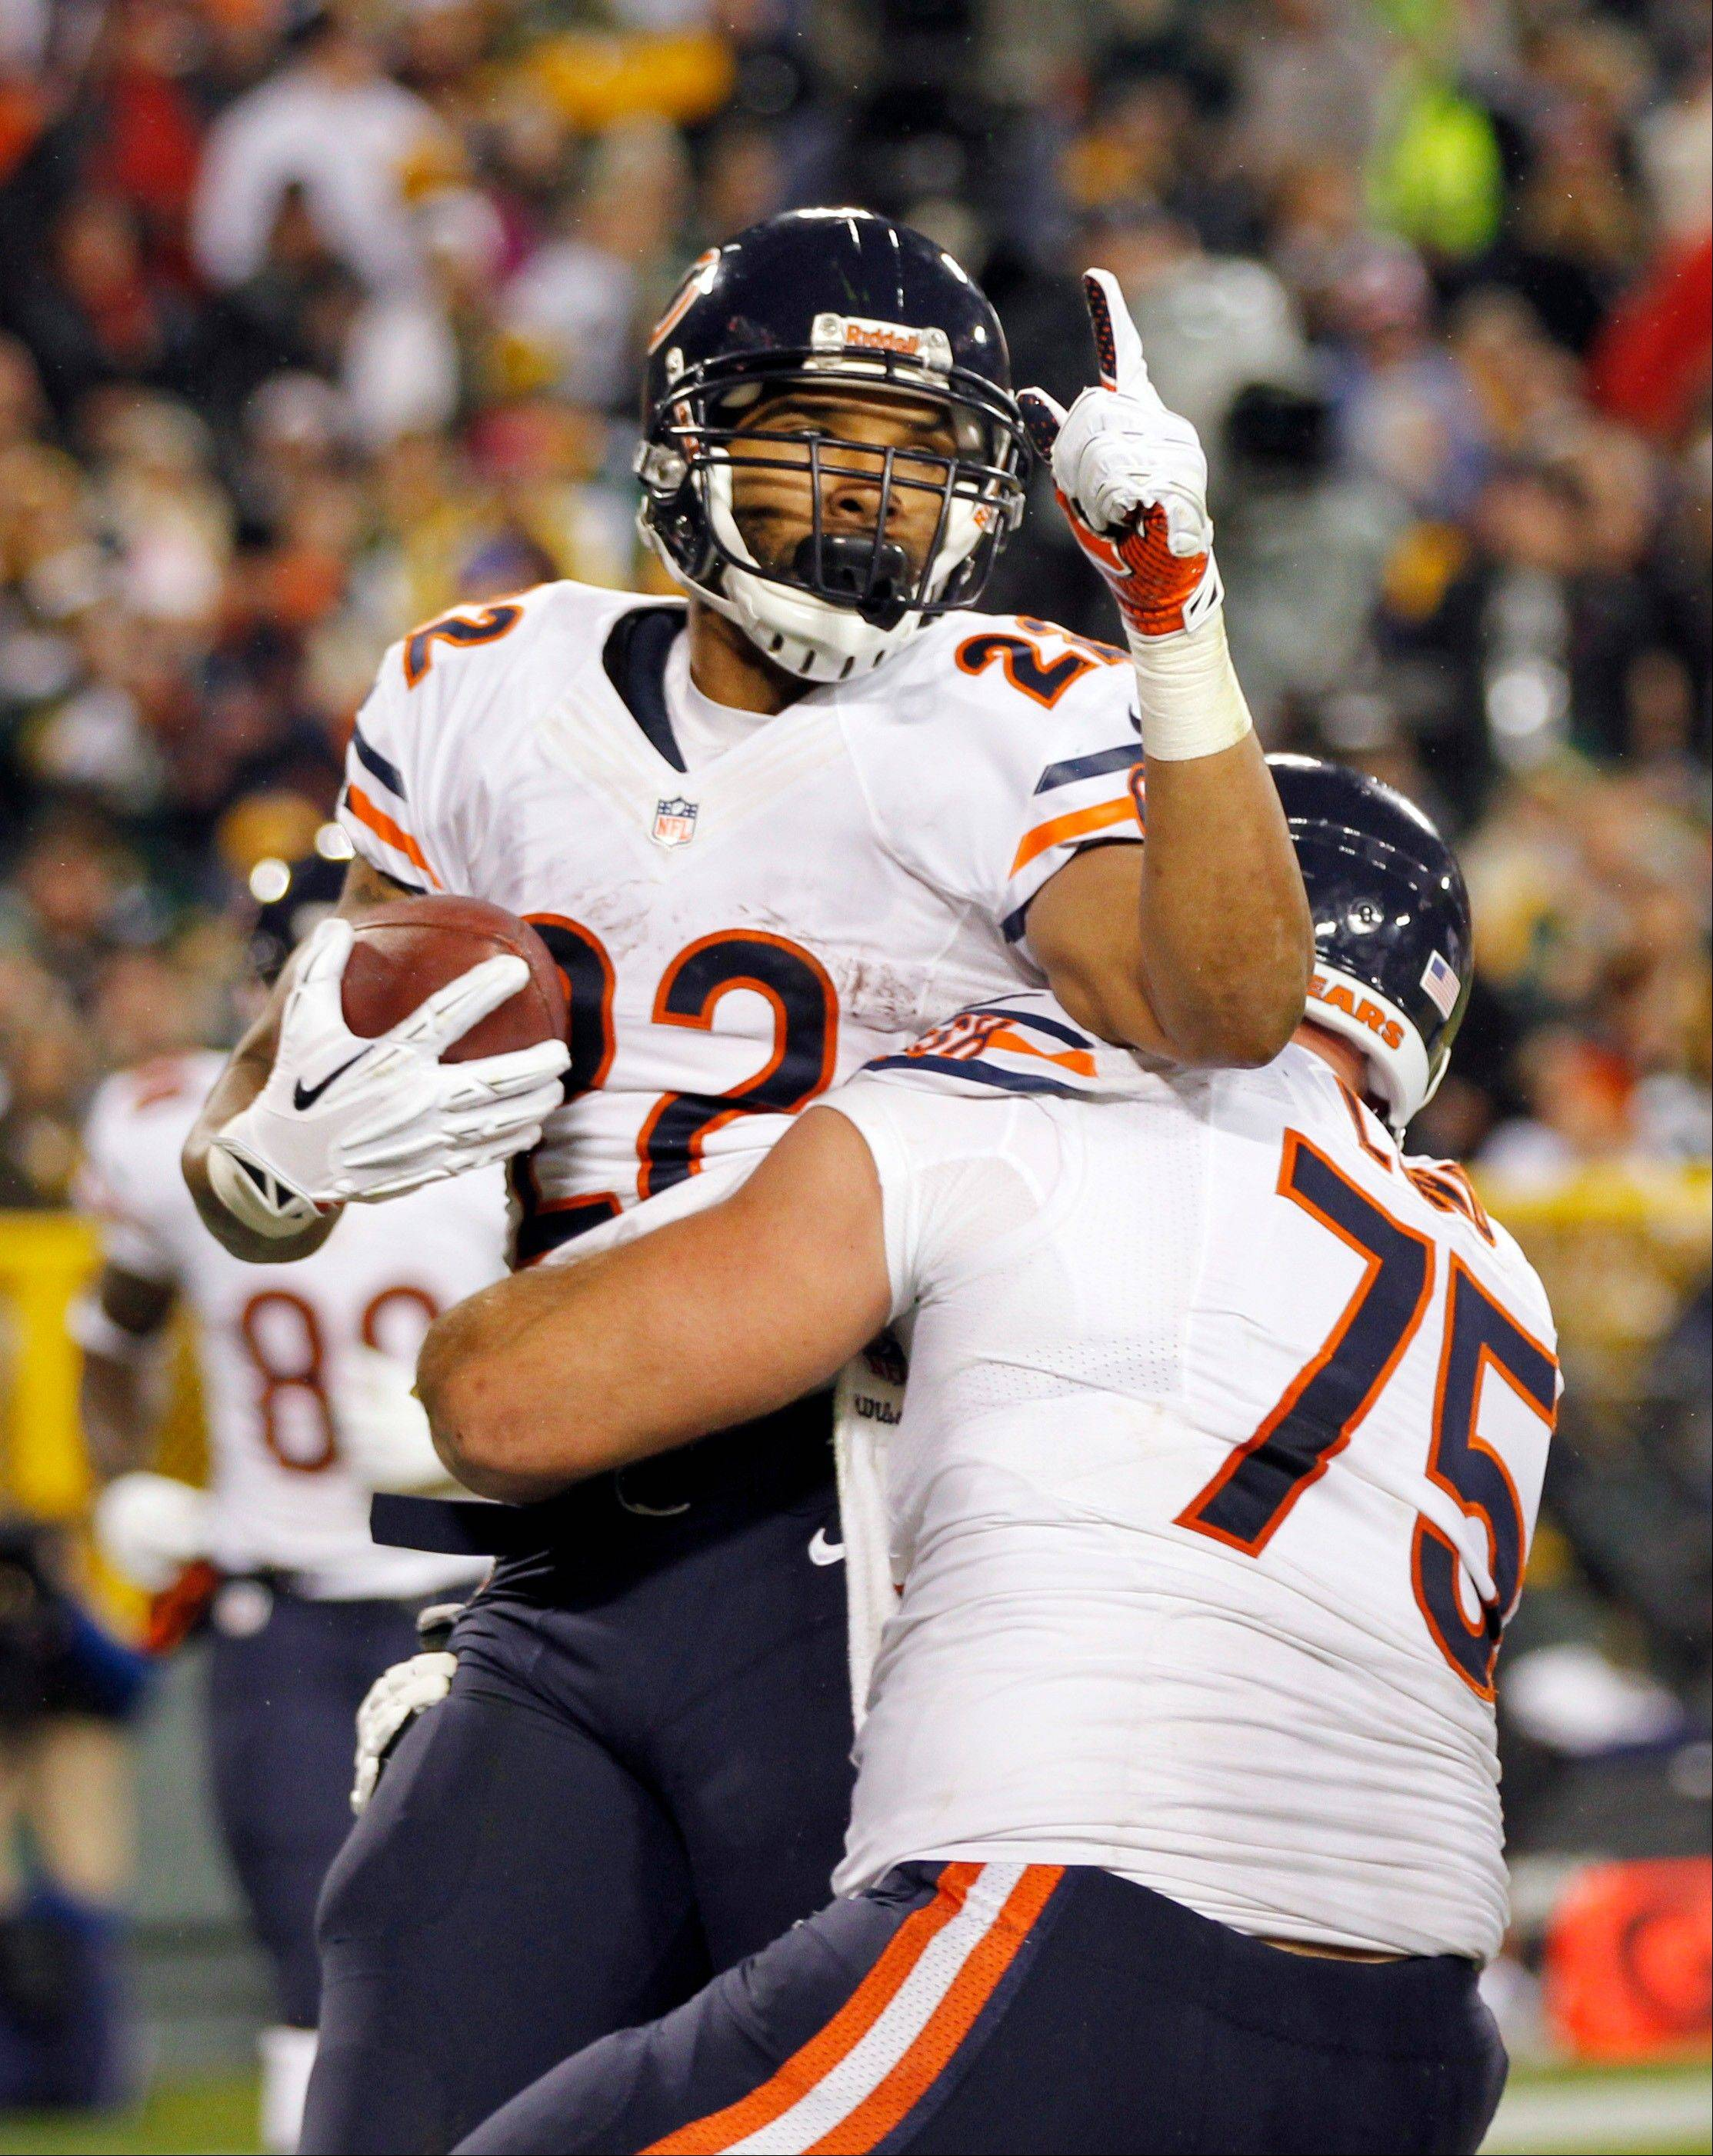 Chicago Bears' Matt Forte (22) celebrates his touchdown run with teammate Kyle Long (75) during the first half of an NFL football game against the Green Bay Packers Monday, Nov. 4, 2013, in Green Bay, Wis.